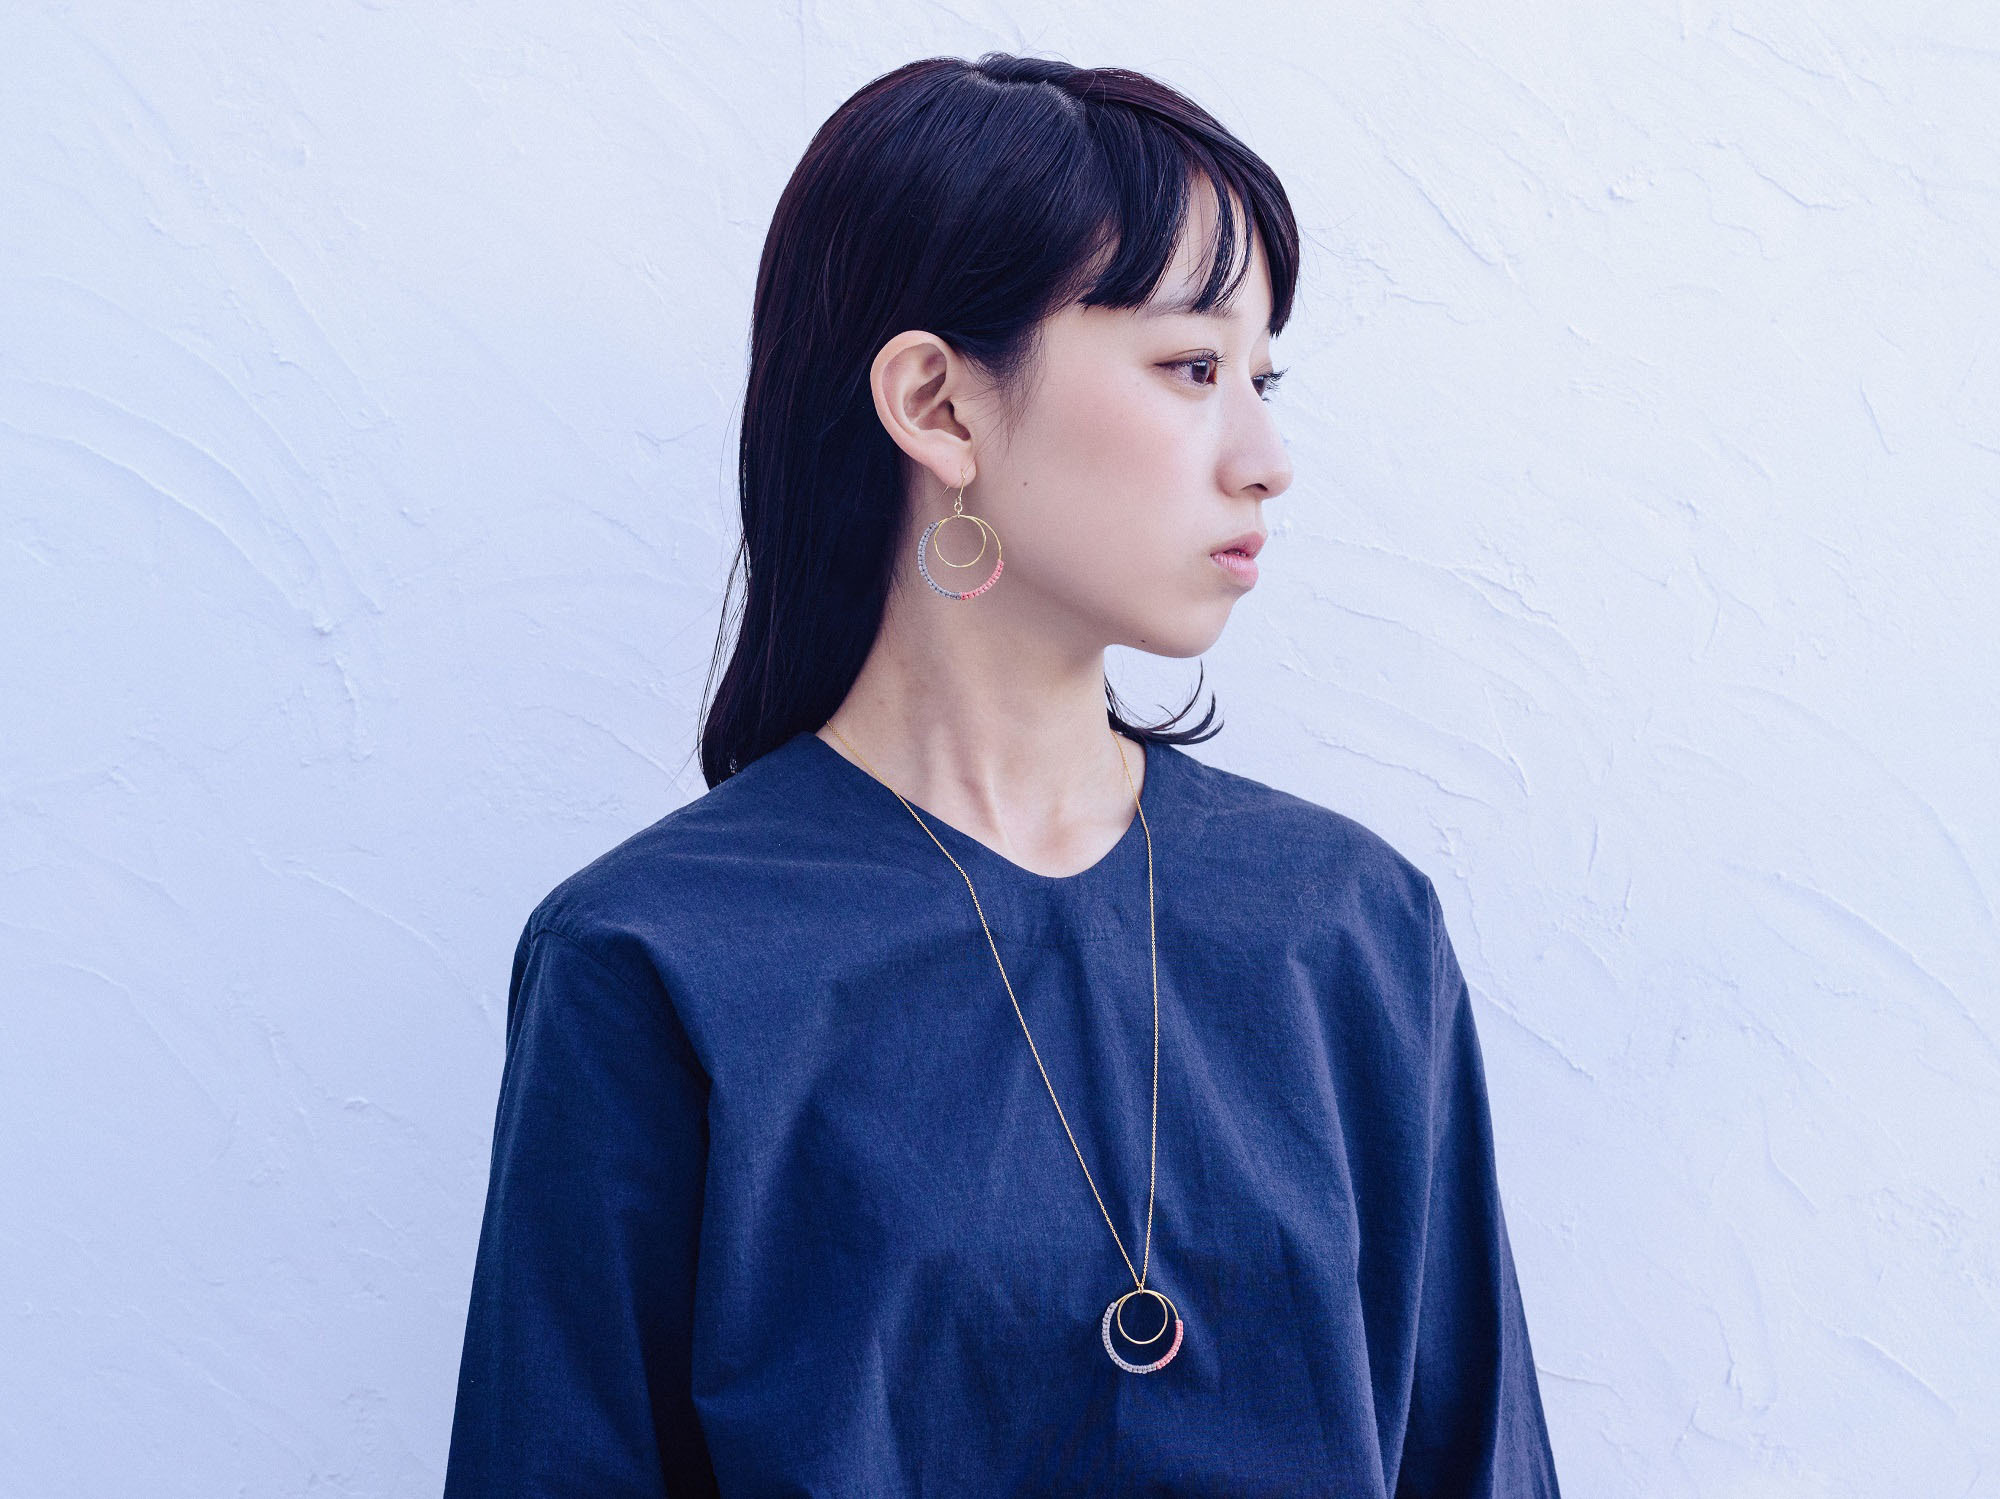 《niruc×KnottWorks》リングネックレス・Brass/Double Ring Necklace×3colors